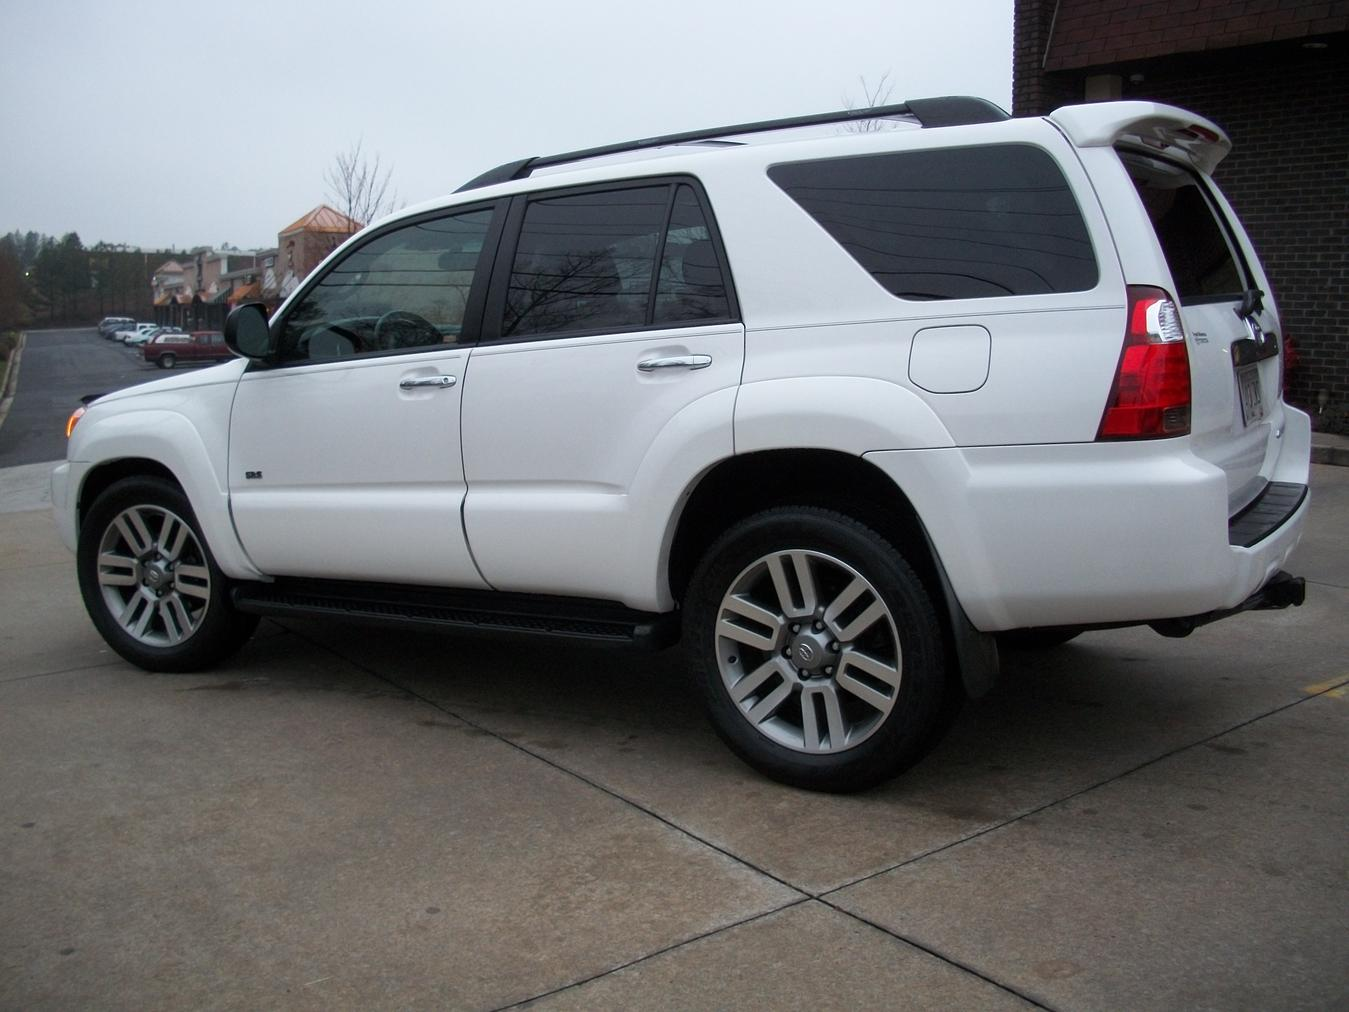 Check It Out Le 20 S On 4th Gen Toyota 4runner Forum